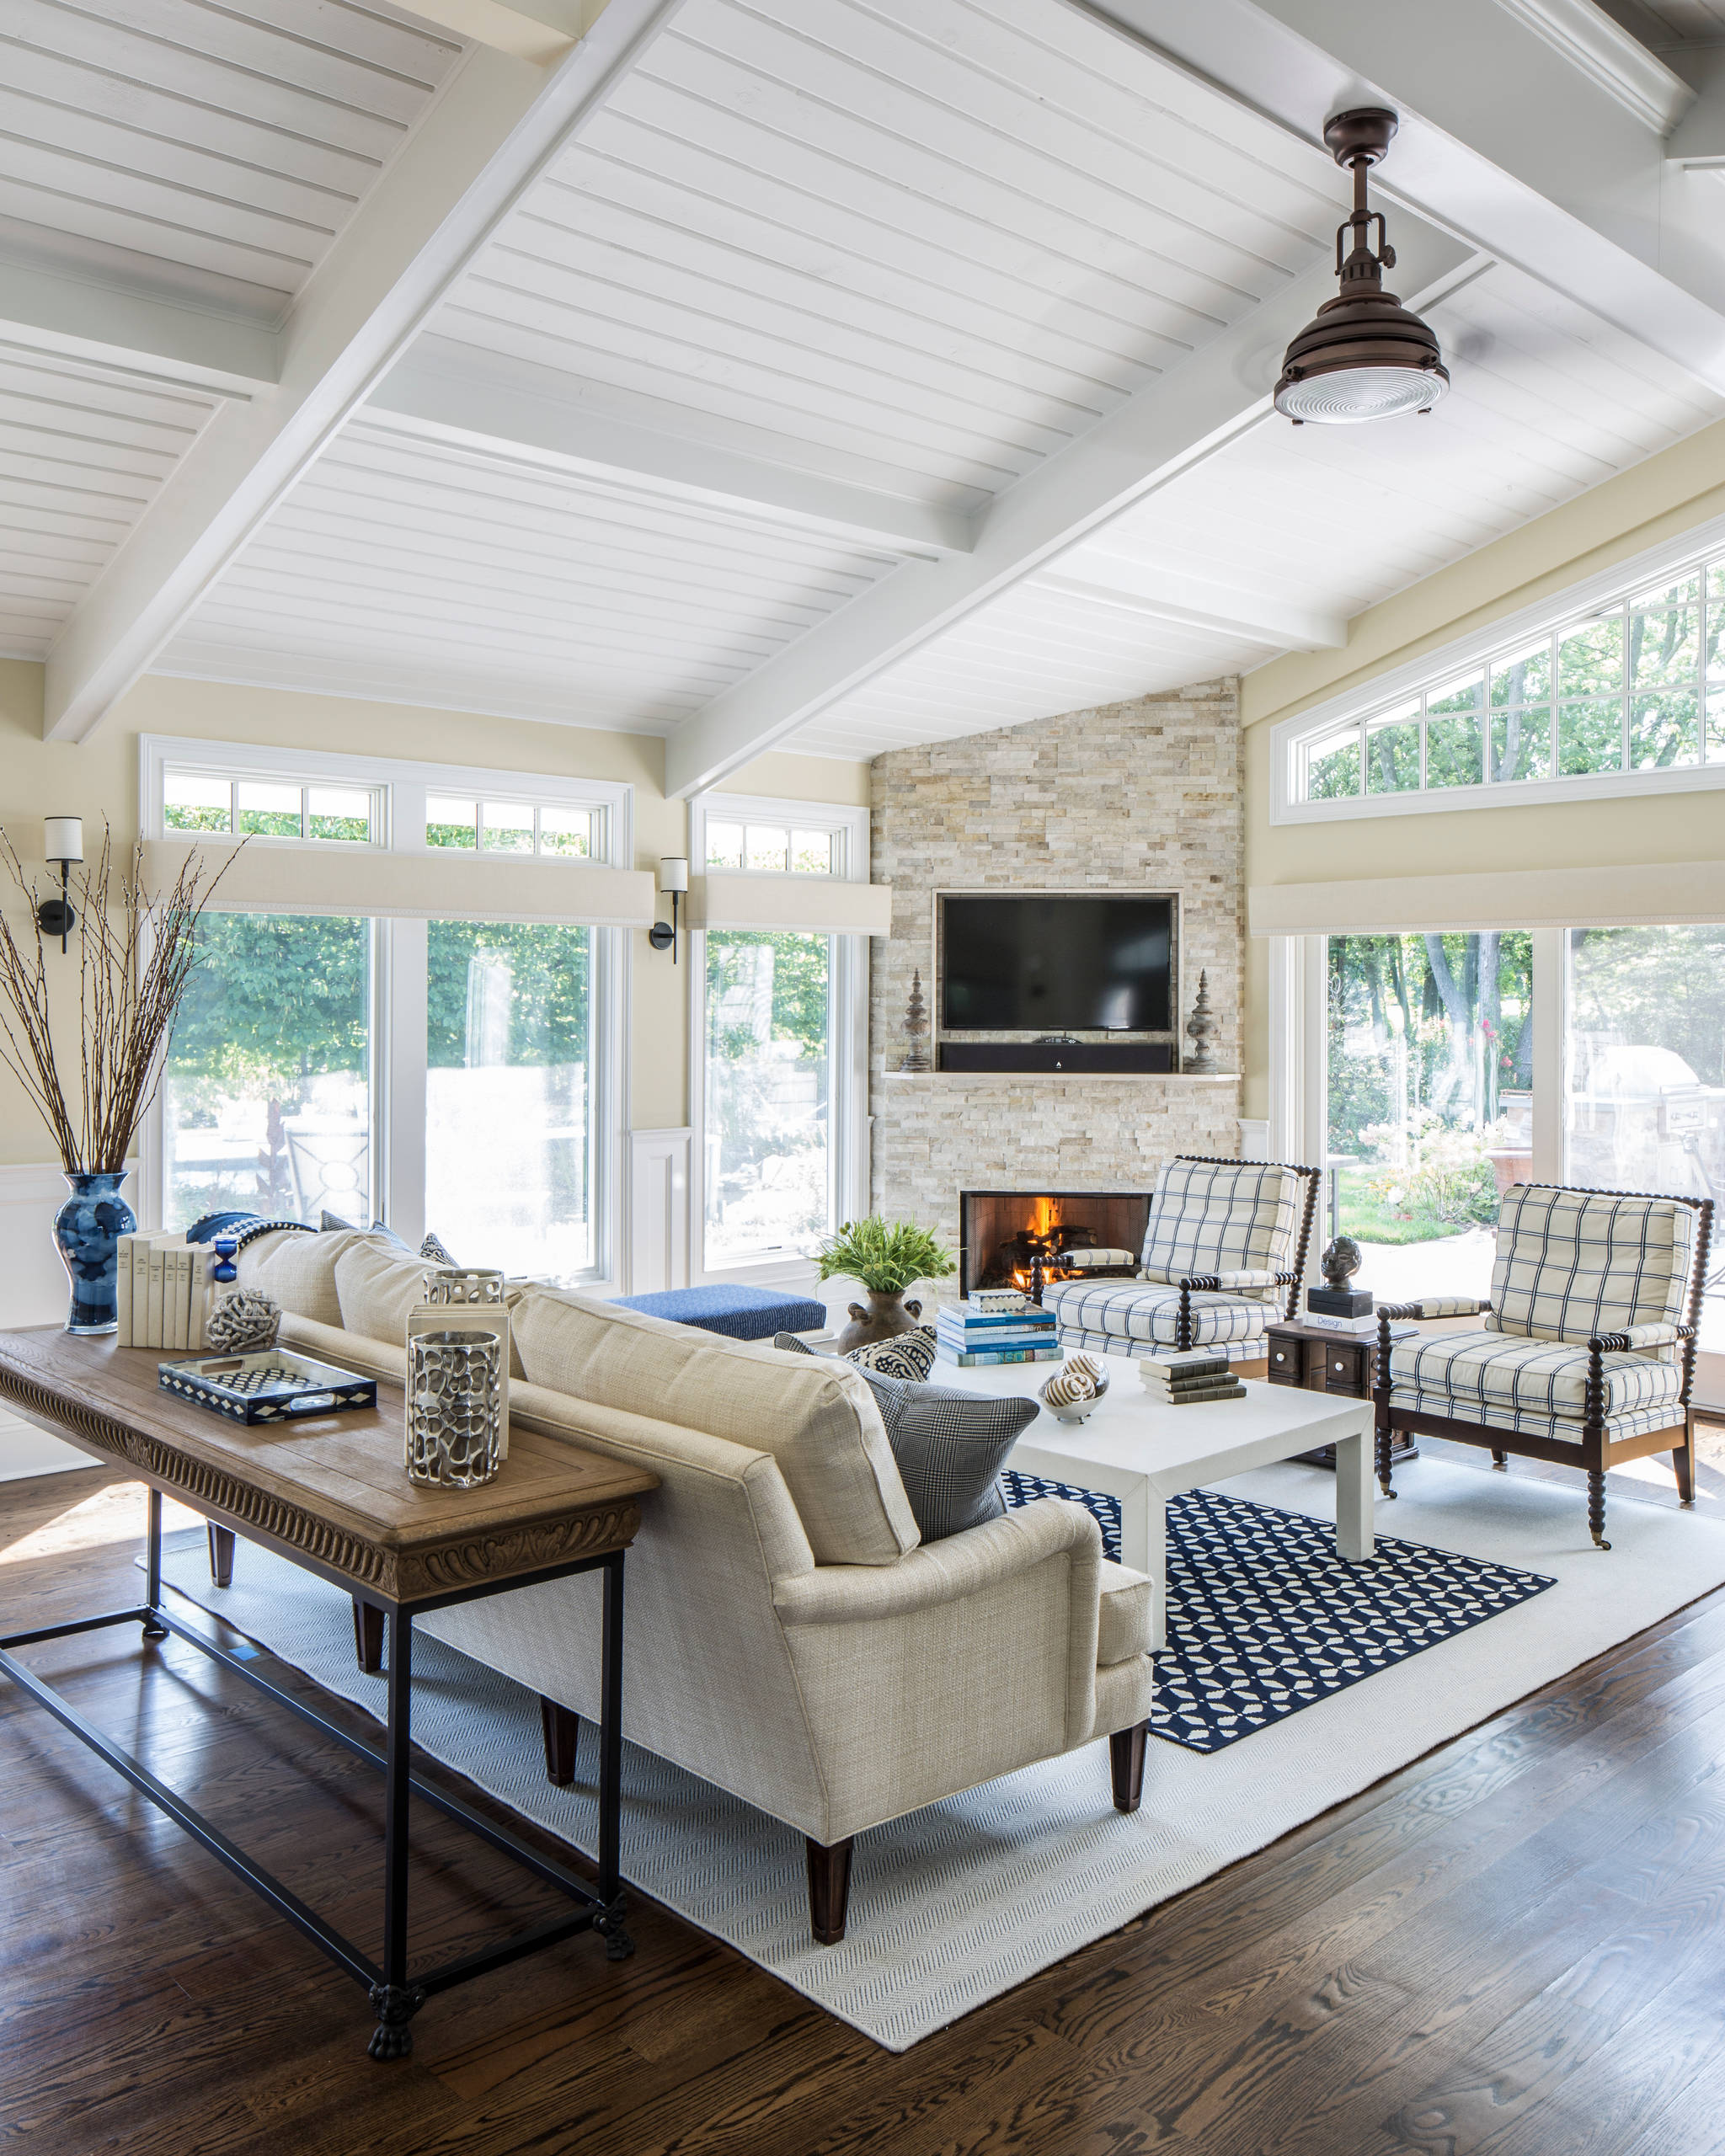 75 Beautiful Traditional Living Room Pictures Ideas September 2020 Houzz